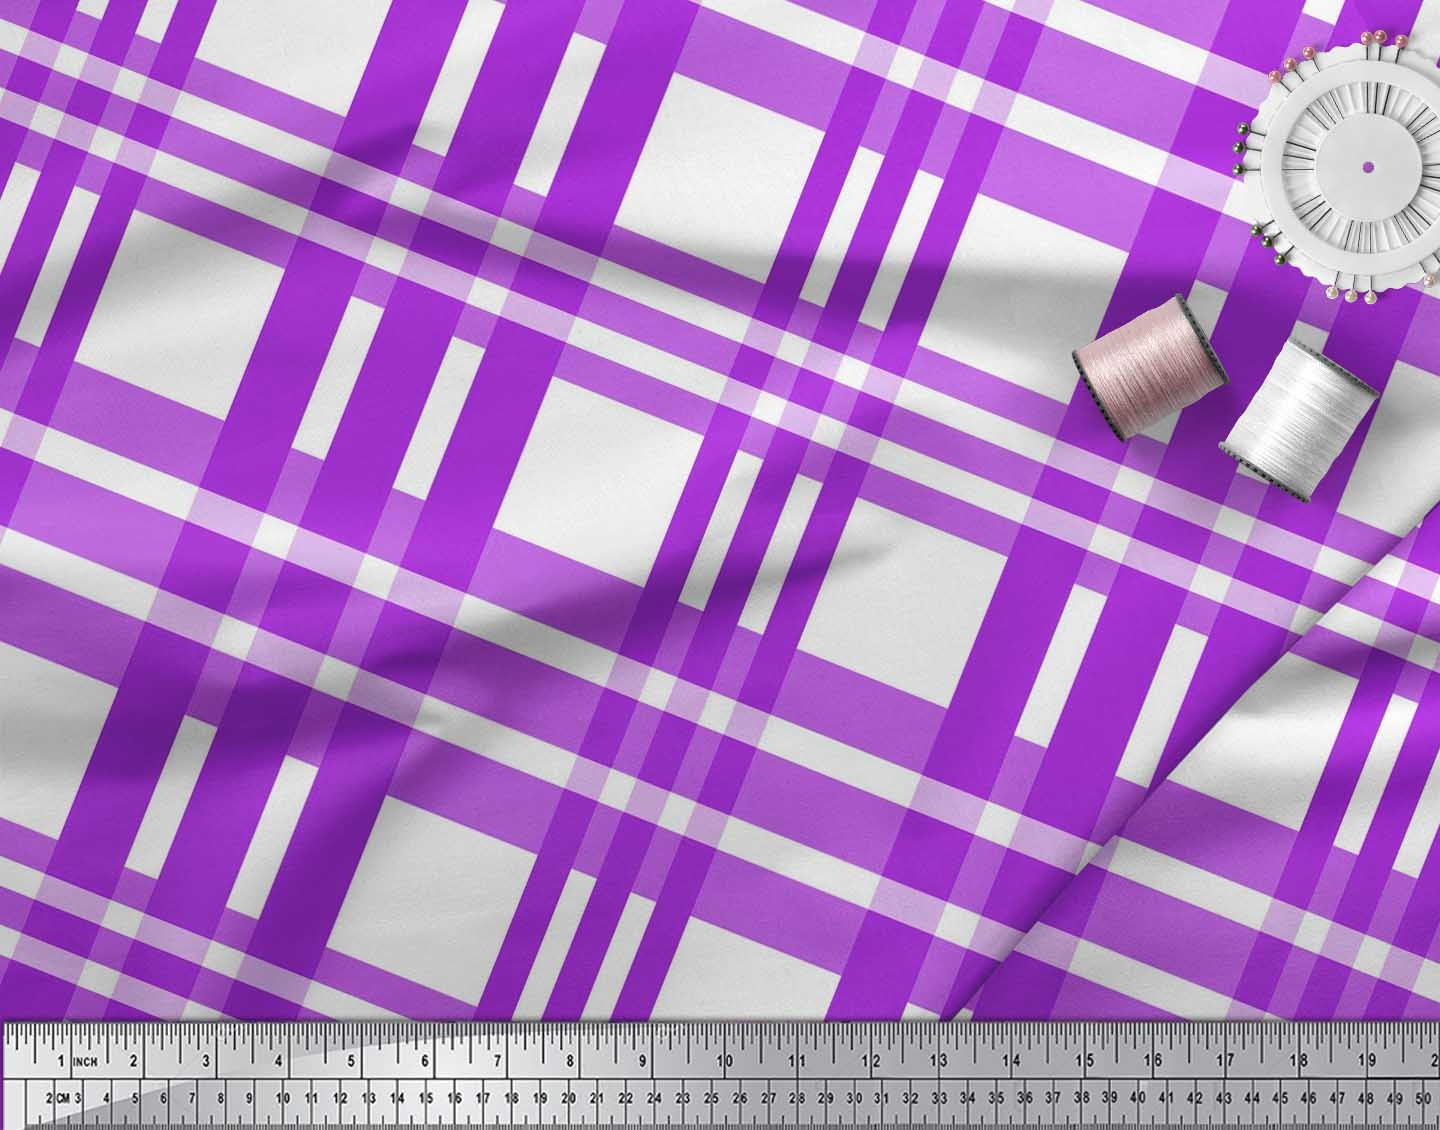 Soimoi-Purple-Cotton-Poplin-Fabric-Plaid-Check-Print-Fabric-by-the-bGc thumbnail 4